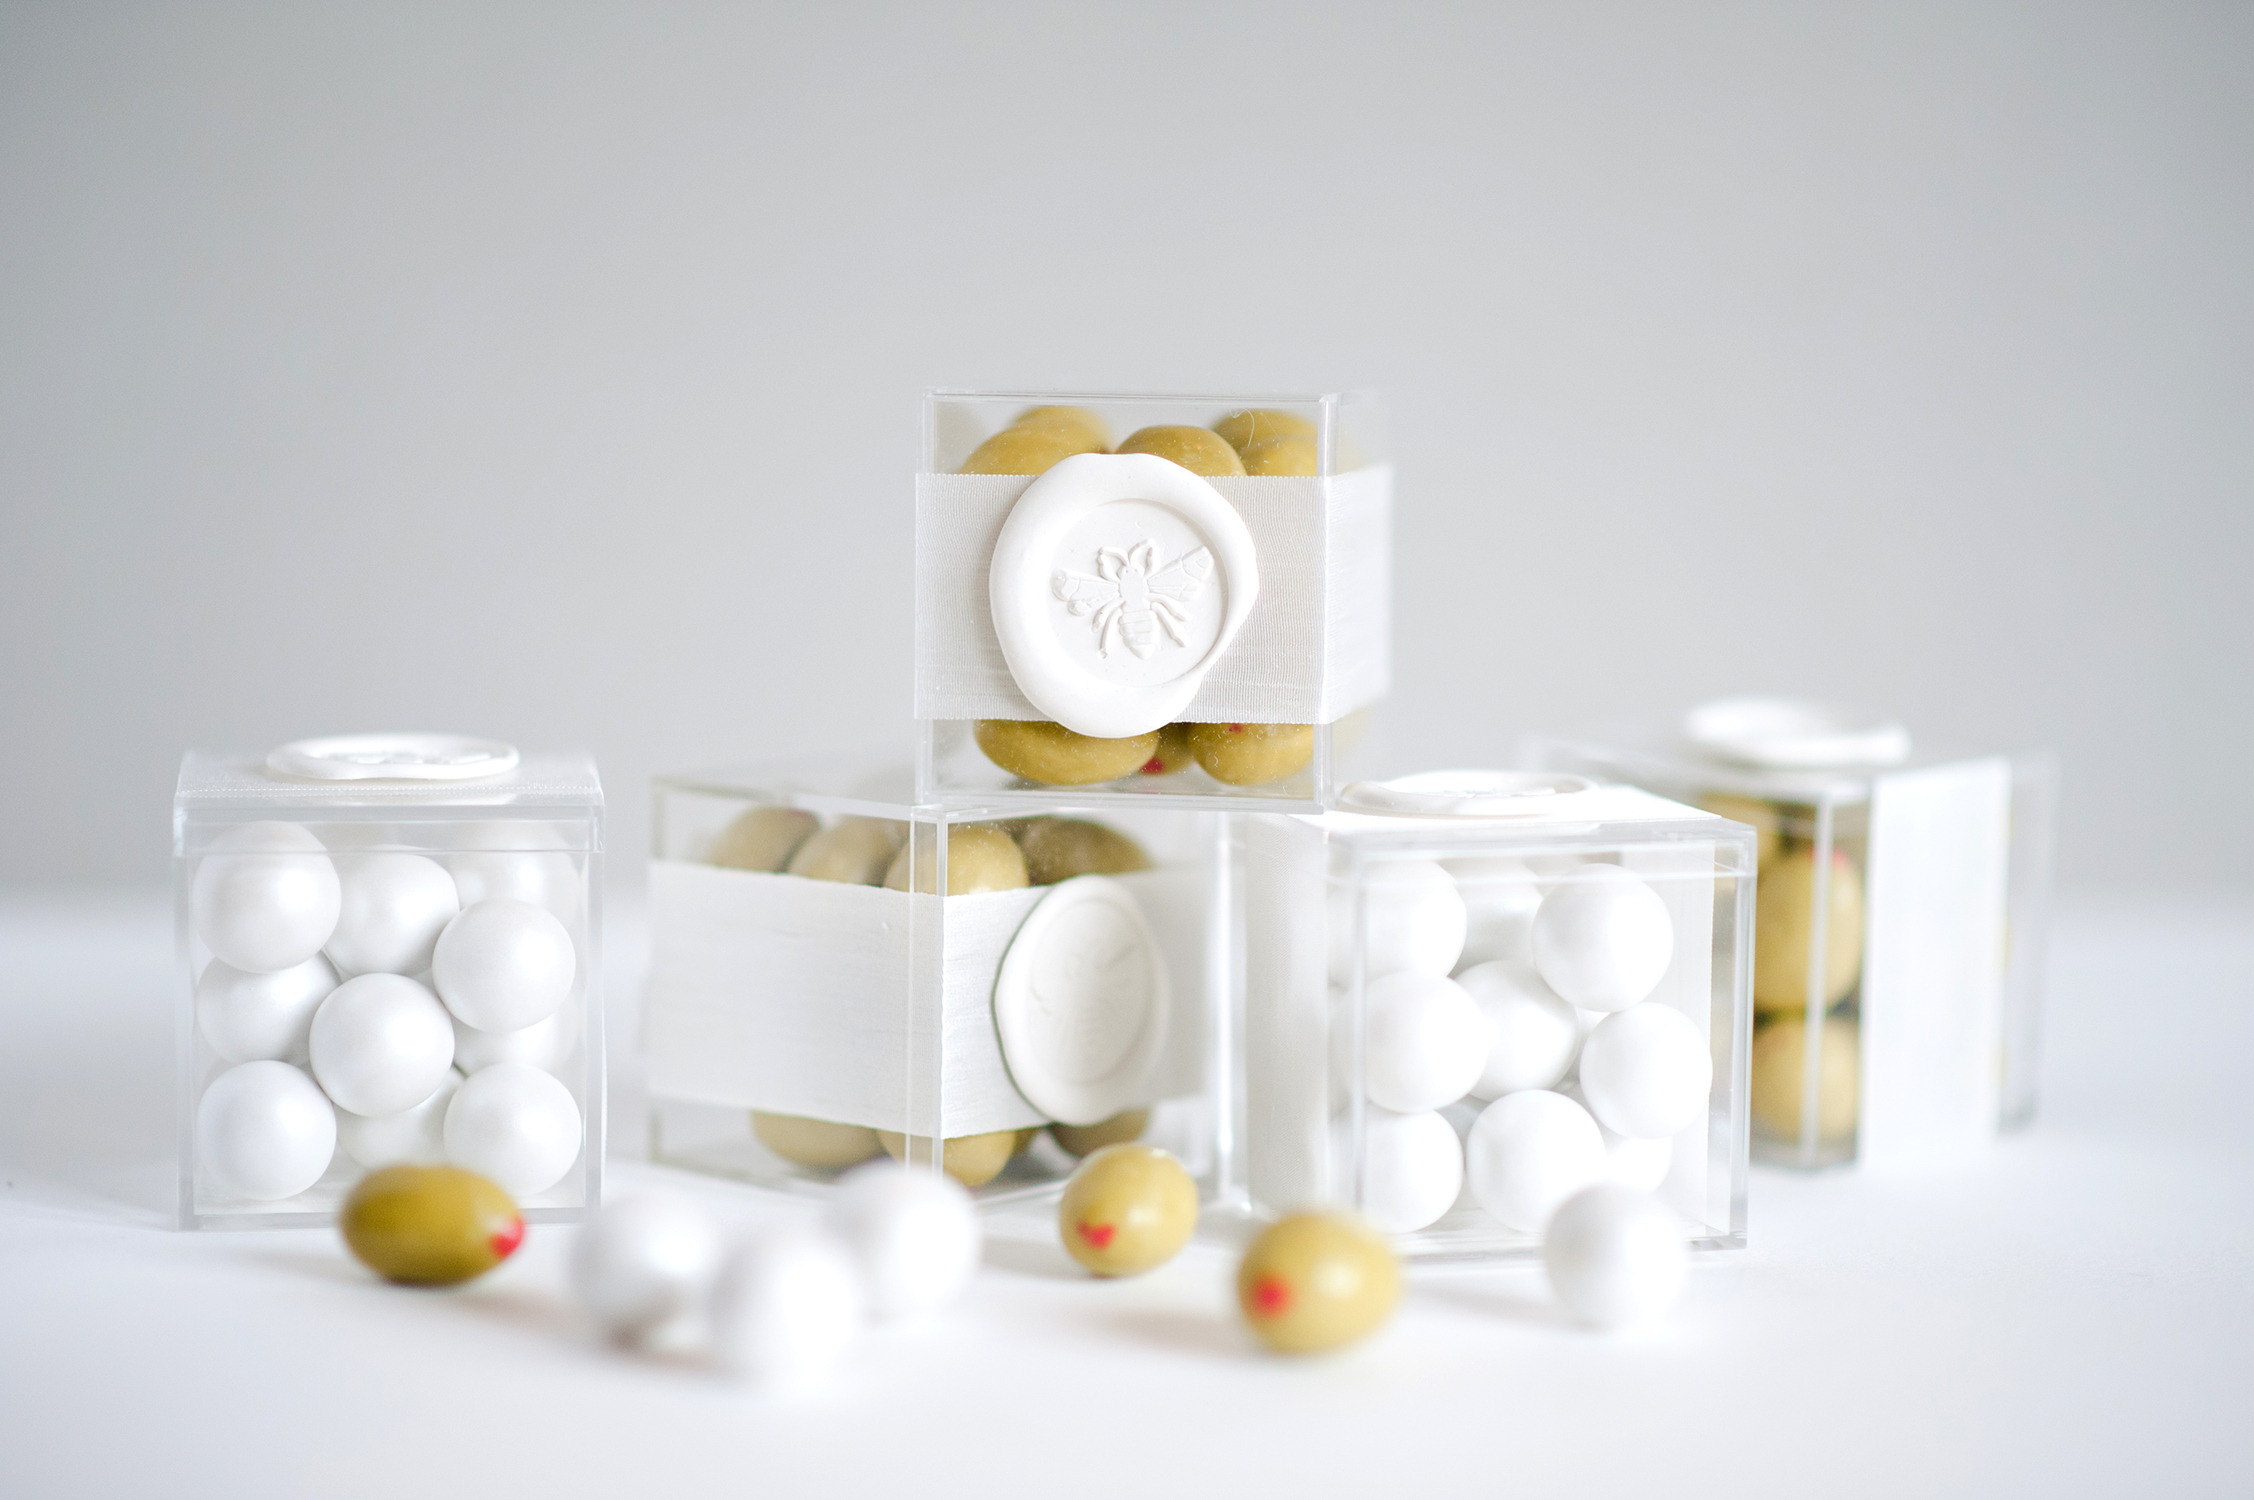 bee wedding ideas cake favors in clear boxes